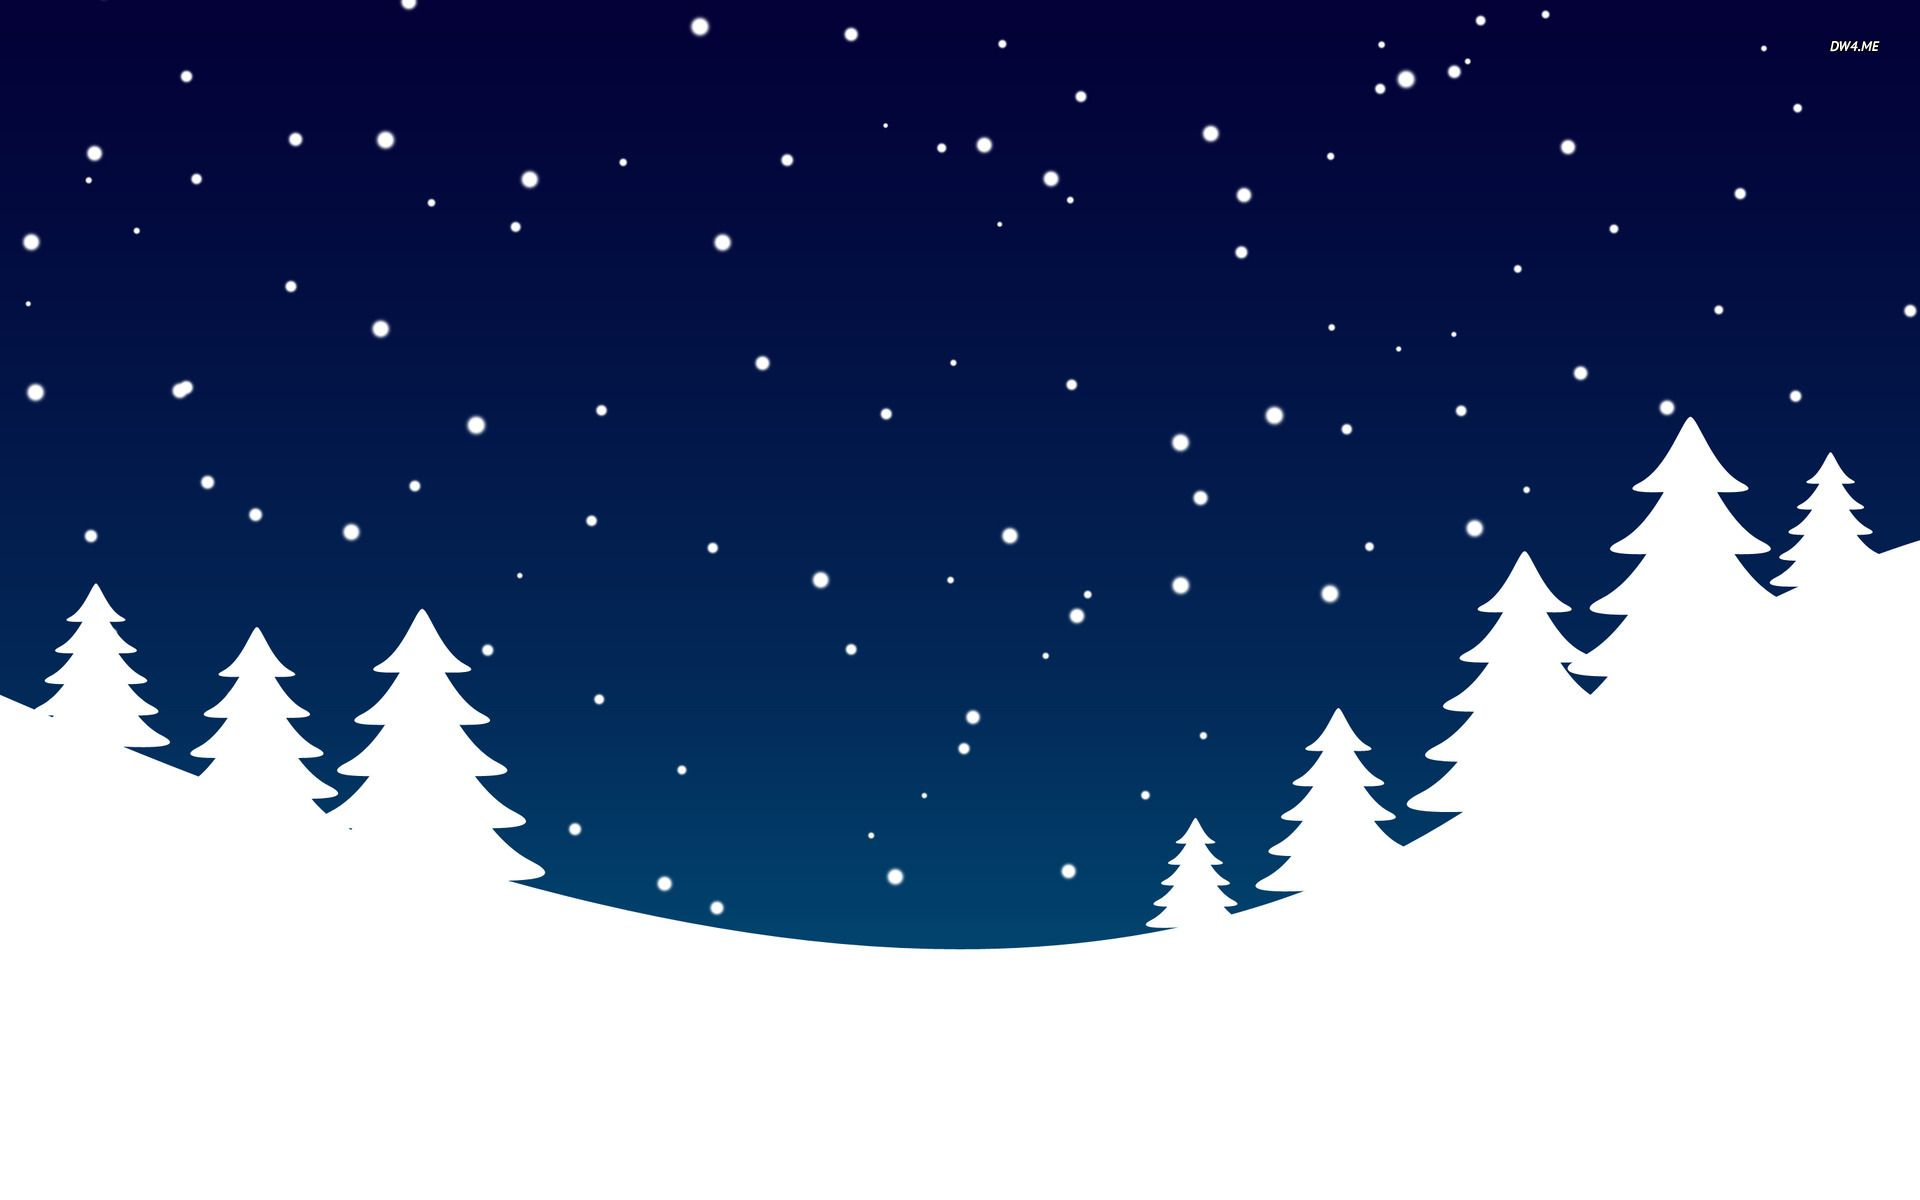 Winter Snow Backgrounds Wallpapers For Desktop